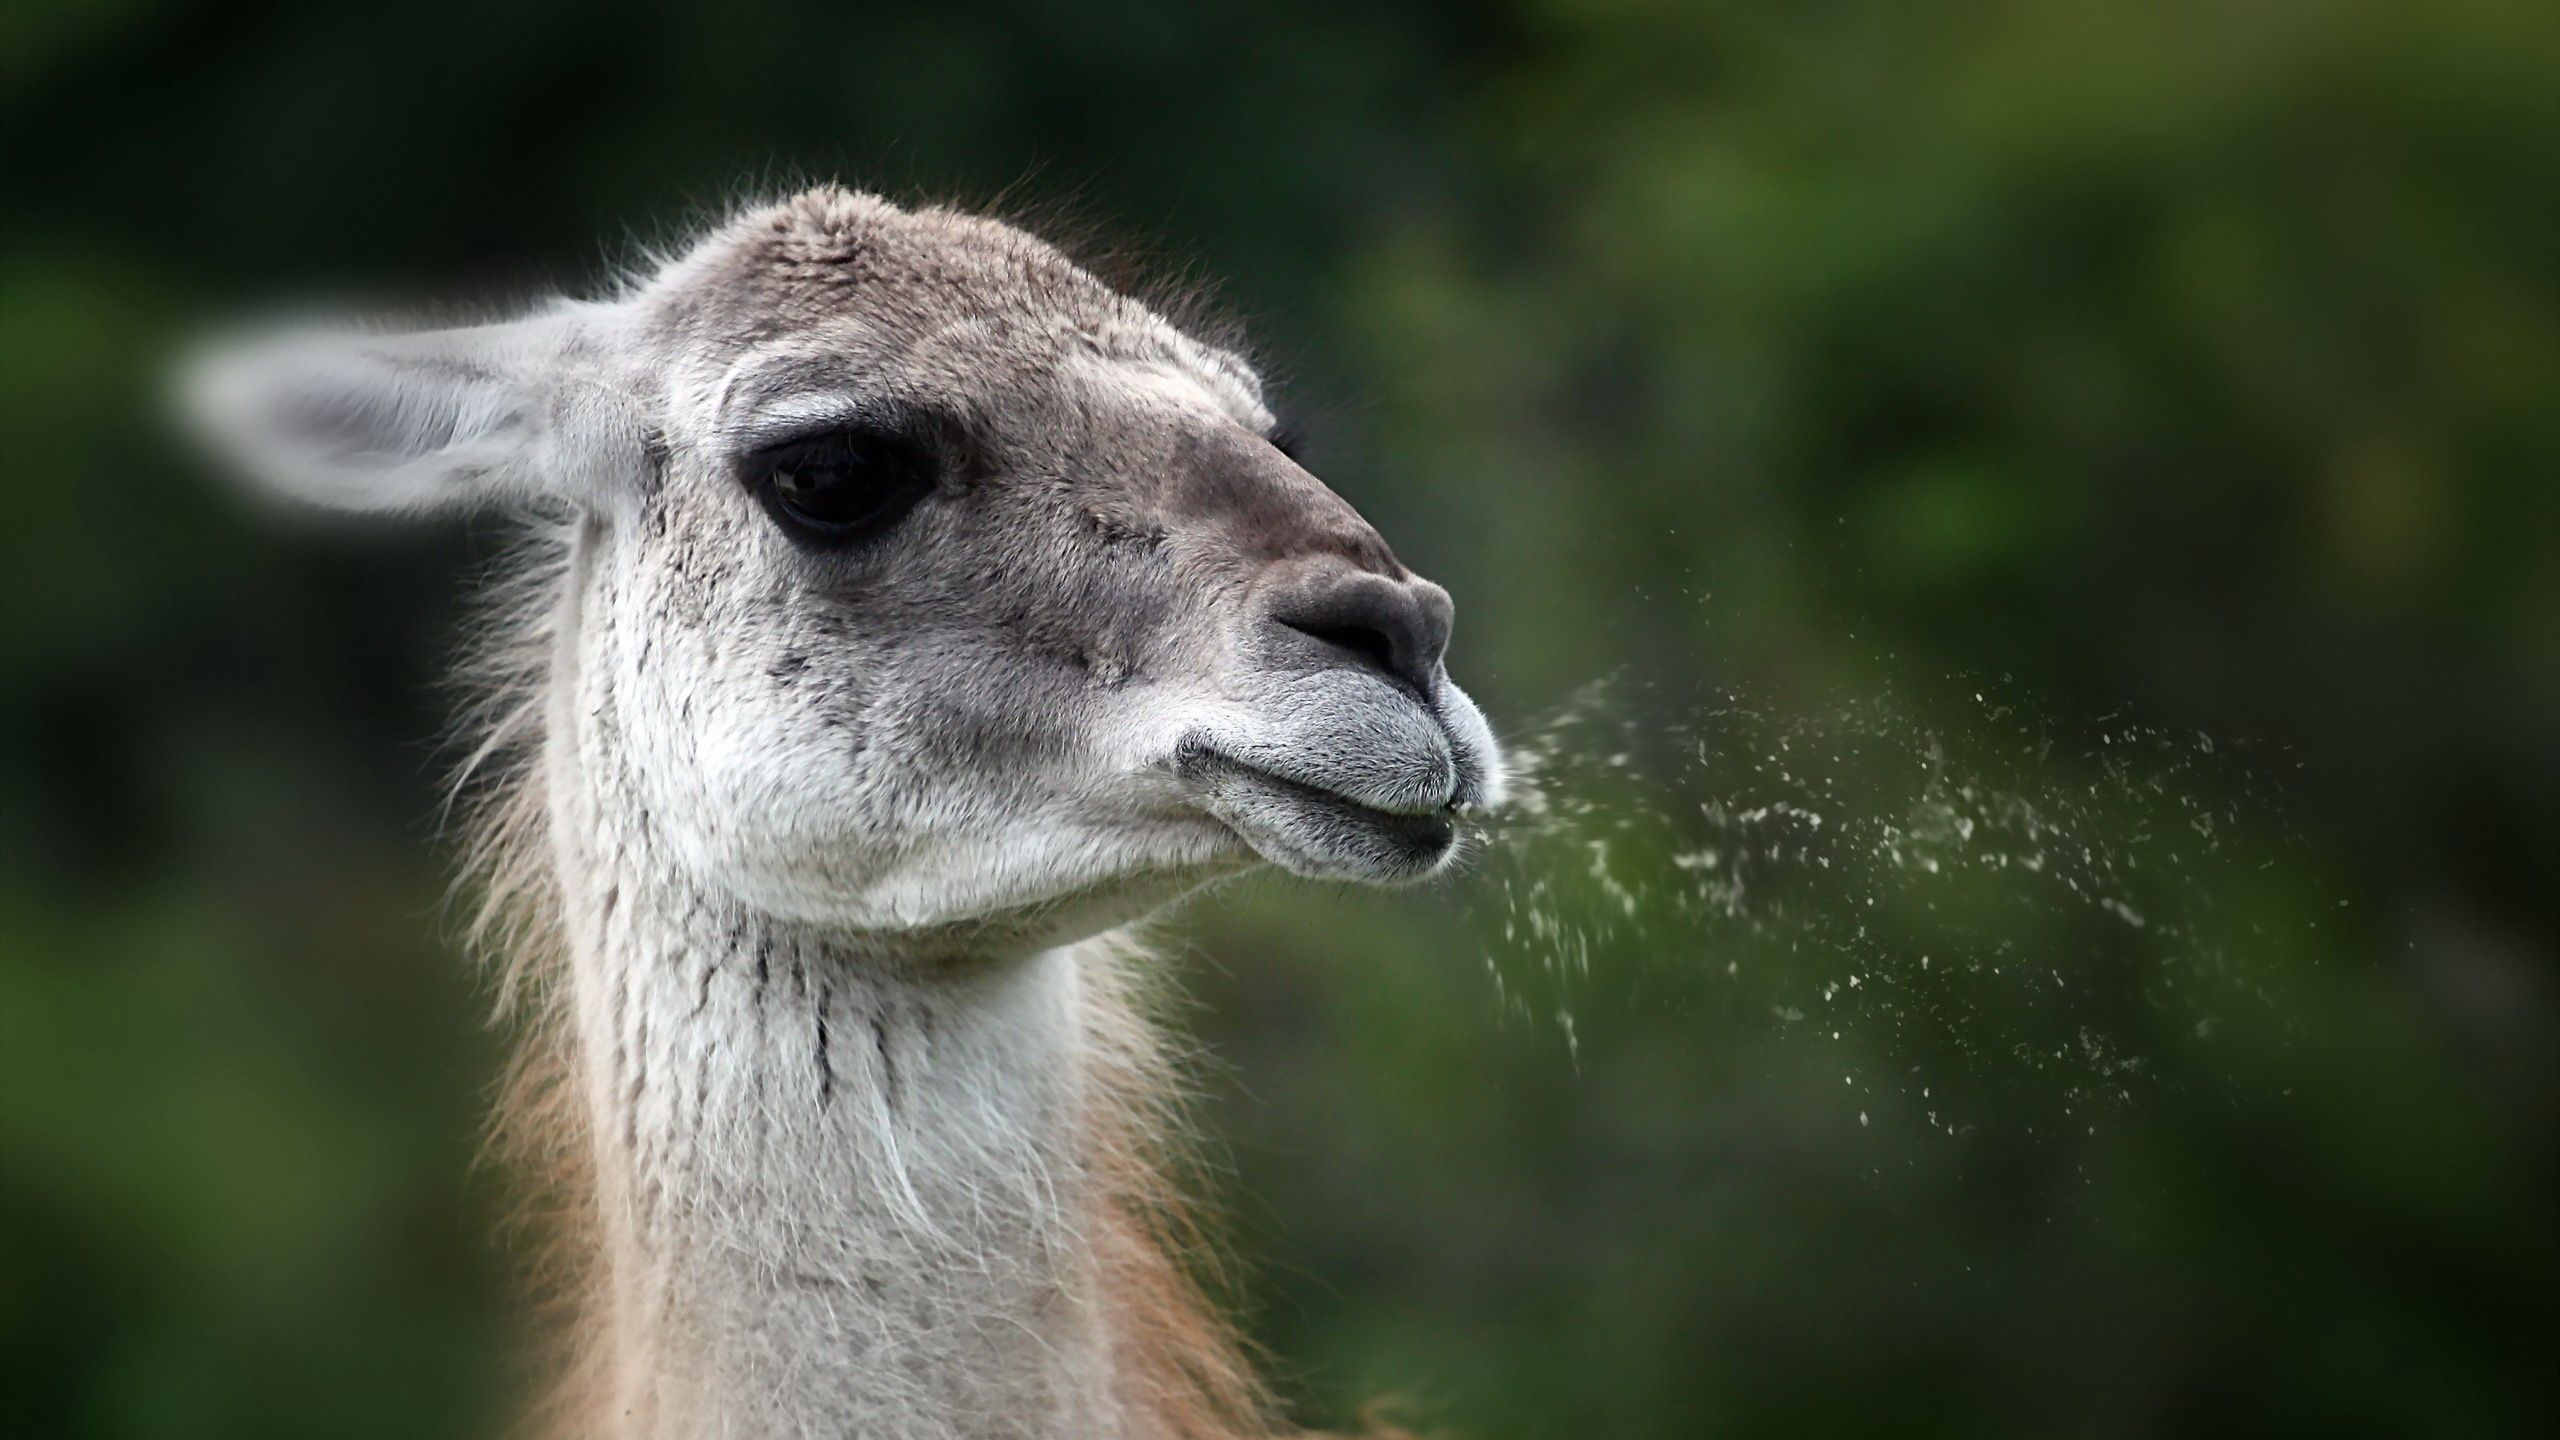 Spitting llama. Funny goat pictures, Goat picture, Goats